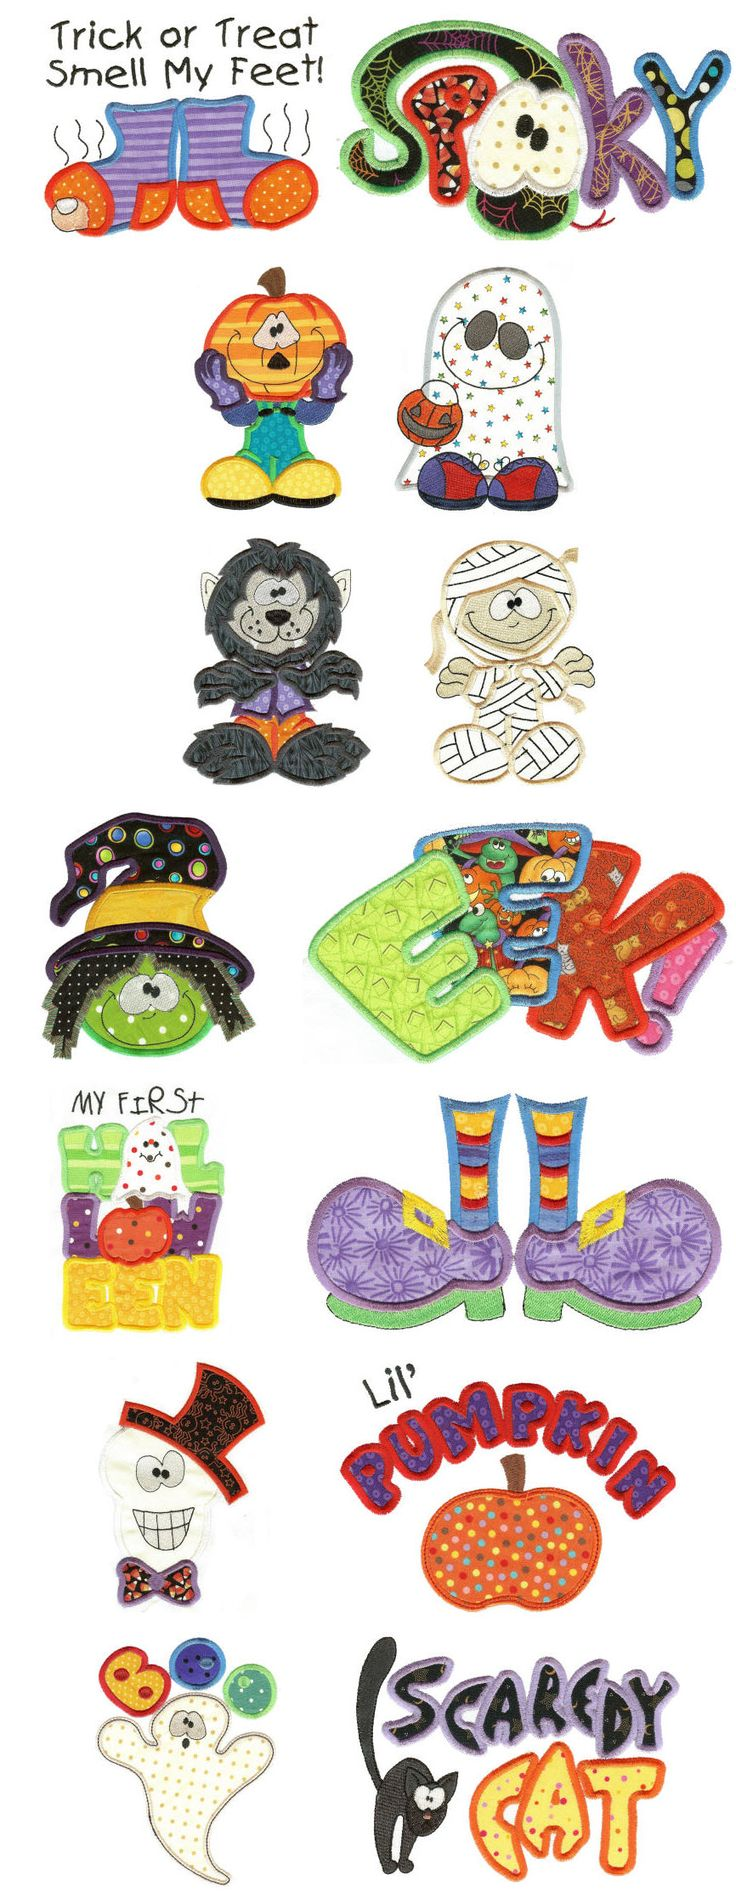 Embroidery | Free Machine Embroidery Designs | Treats n Tricks Halloween Applique Too